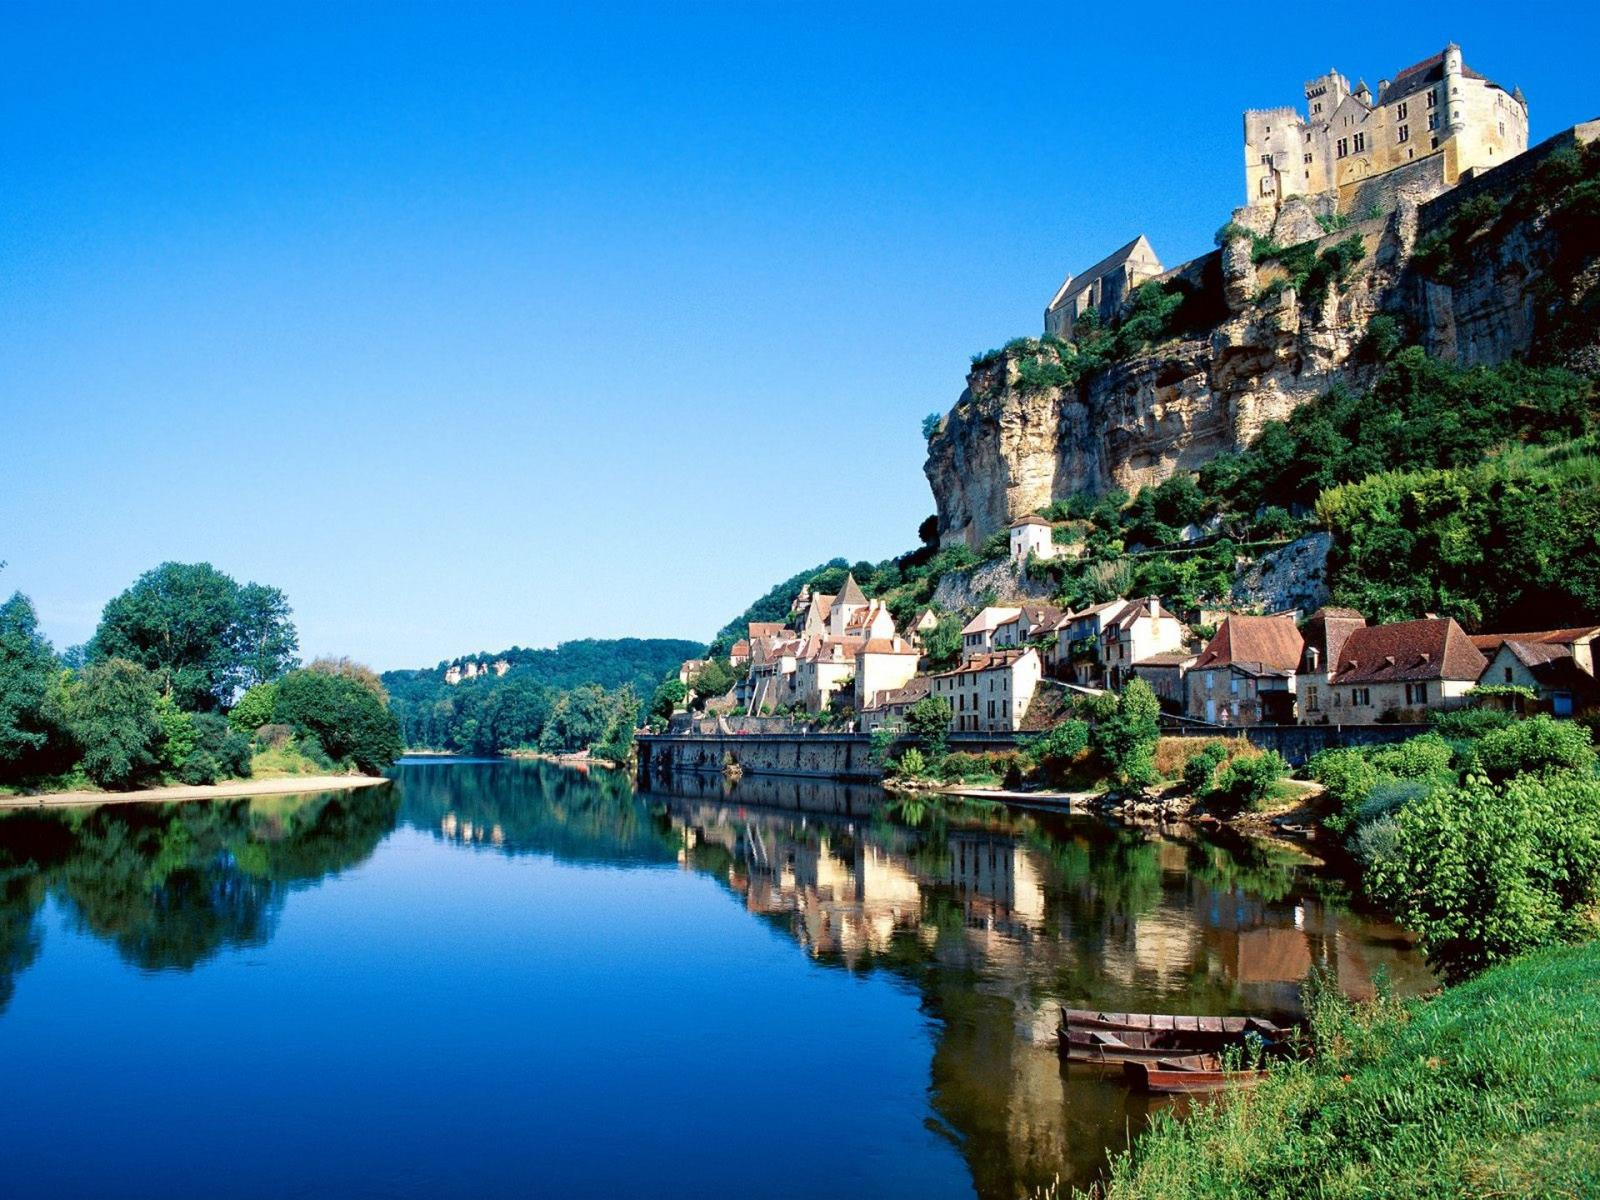 http://1.bp.blogspot.com/-5ttZcEycZ-s/T7FCDmTKhYI/AAAAAAAAFWw/C8fk_gpaiAs/s1600/beynac-dordogne-river-france-abstract-architecture-blue-fantasy-france-photography-rivers-travel-1200x1600+www.deskbase.com.br.jpg